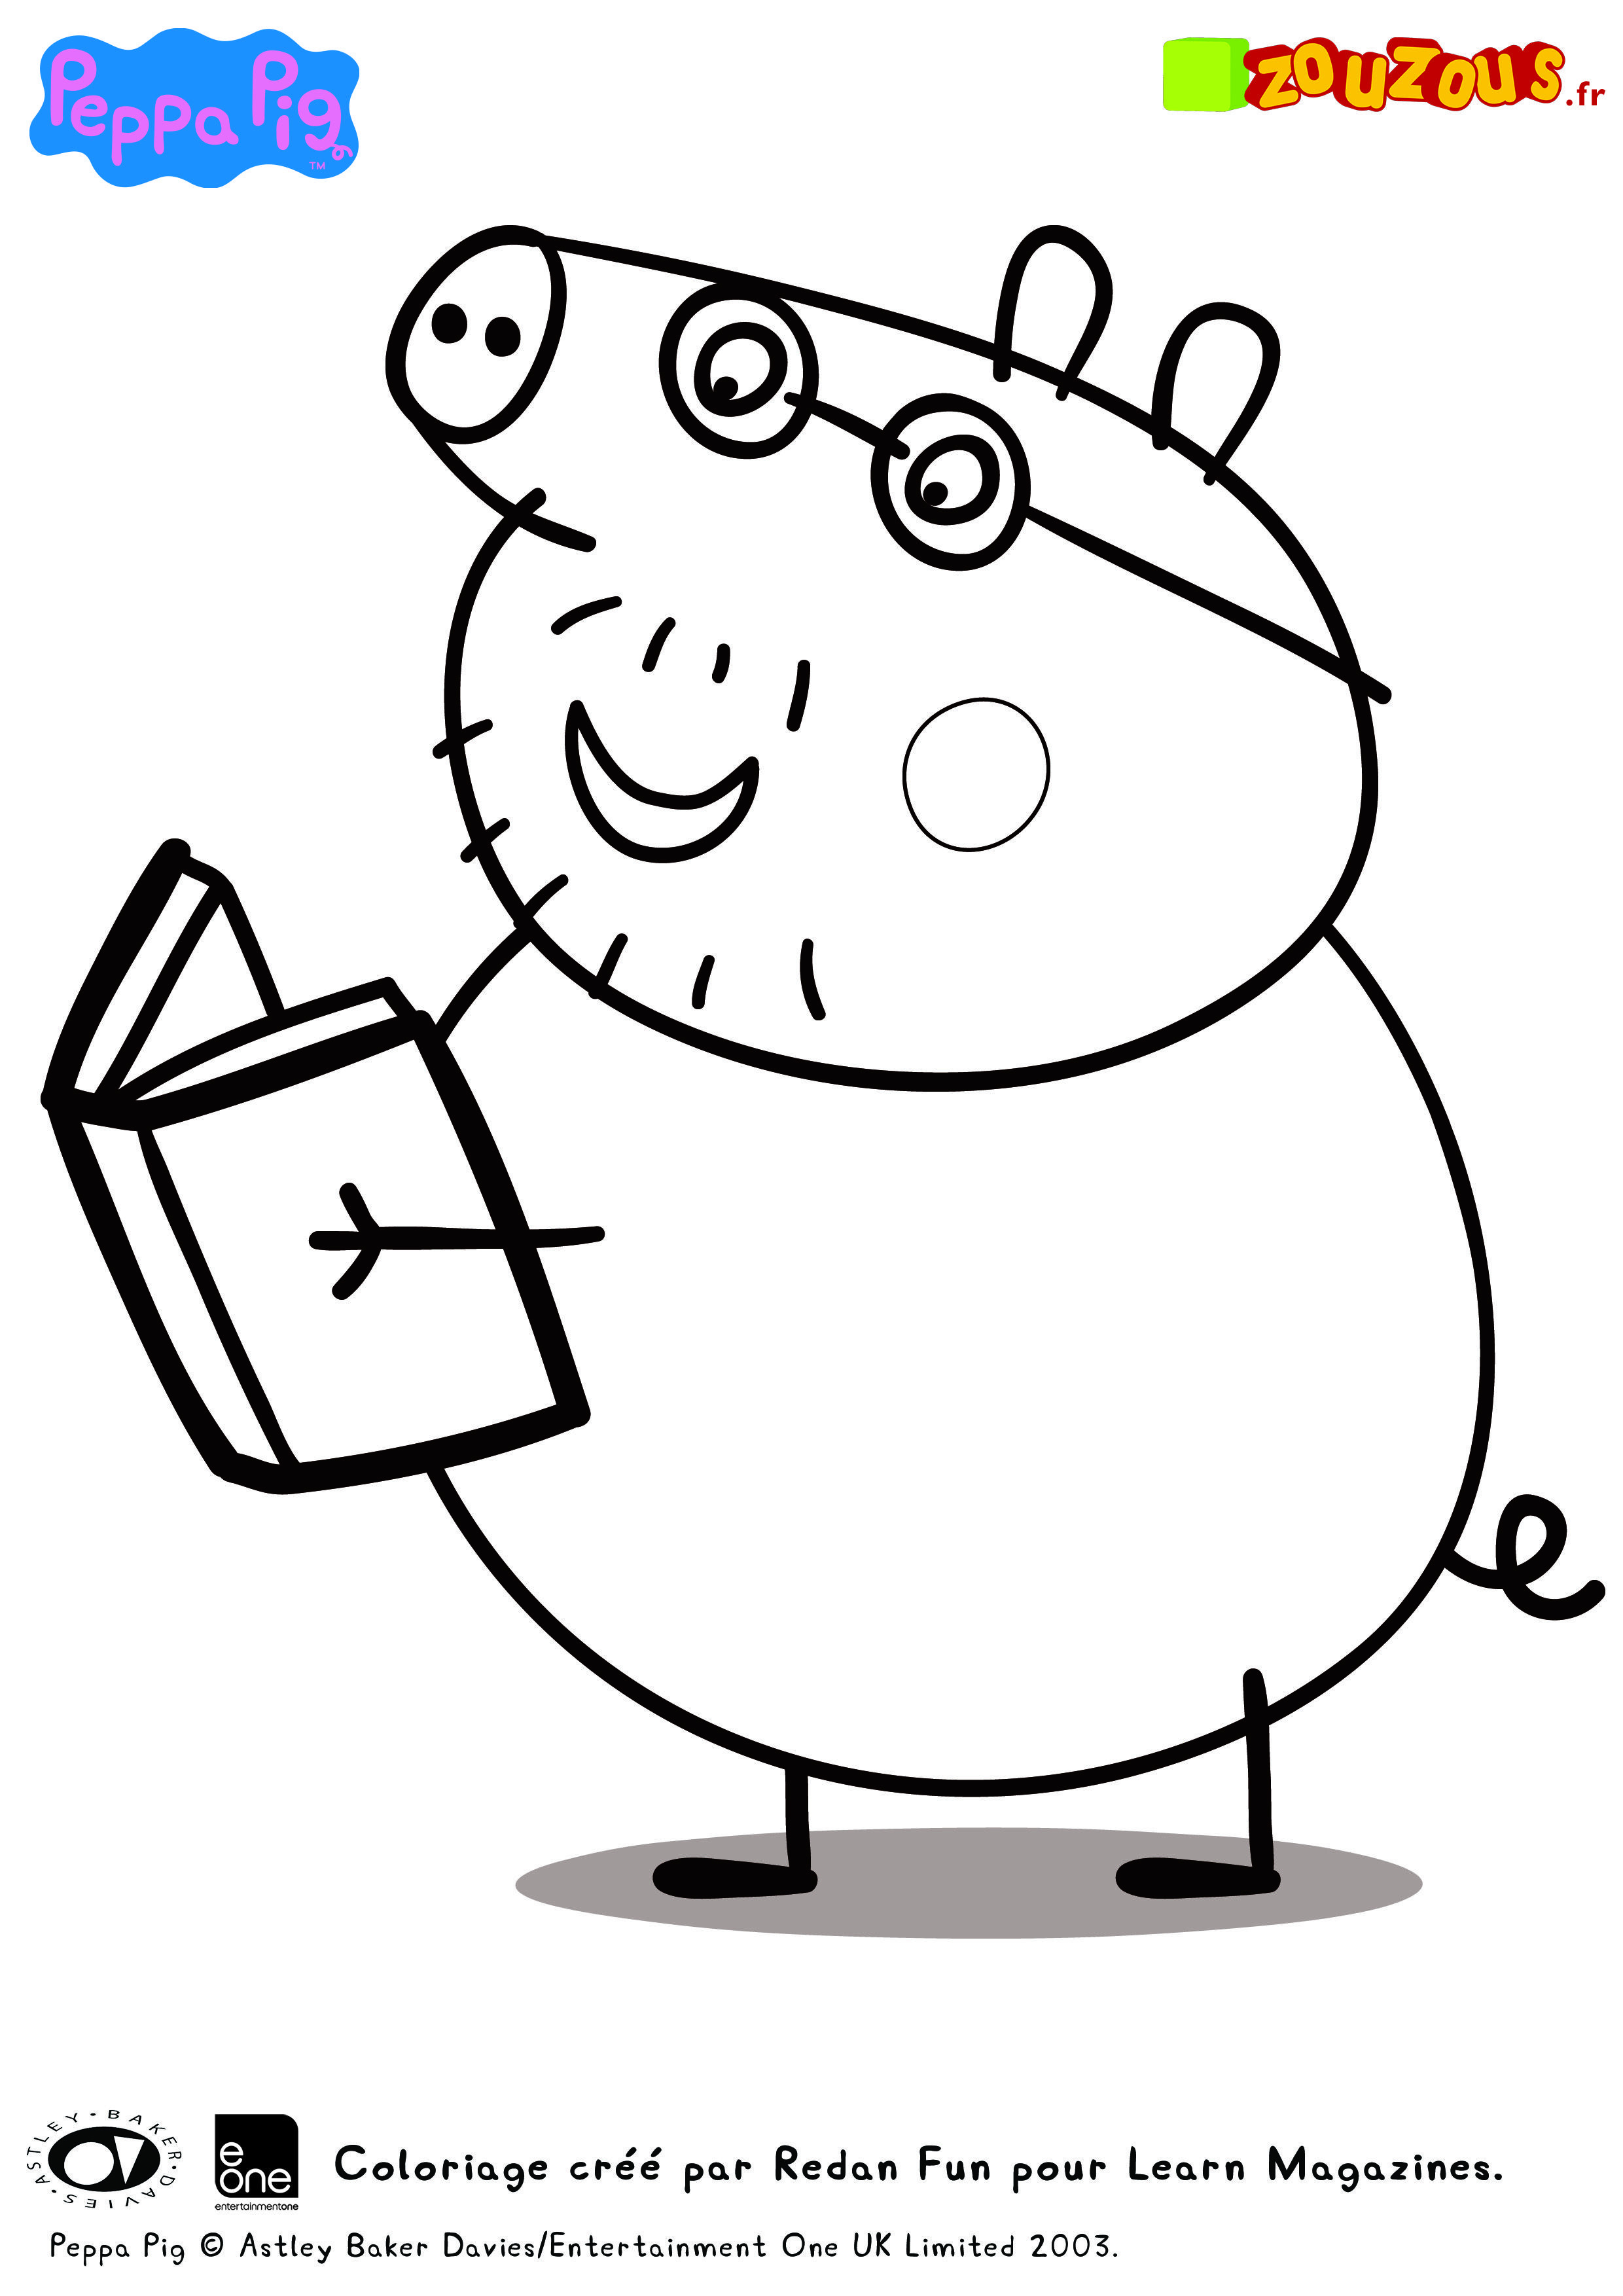 peppa pig and family driving coloring page for kids printable